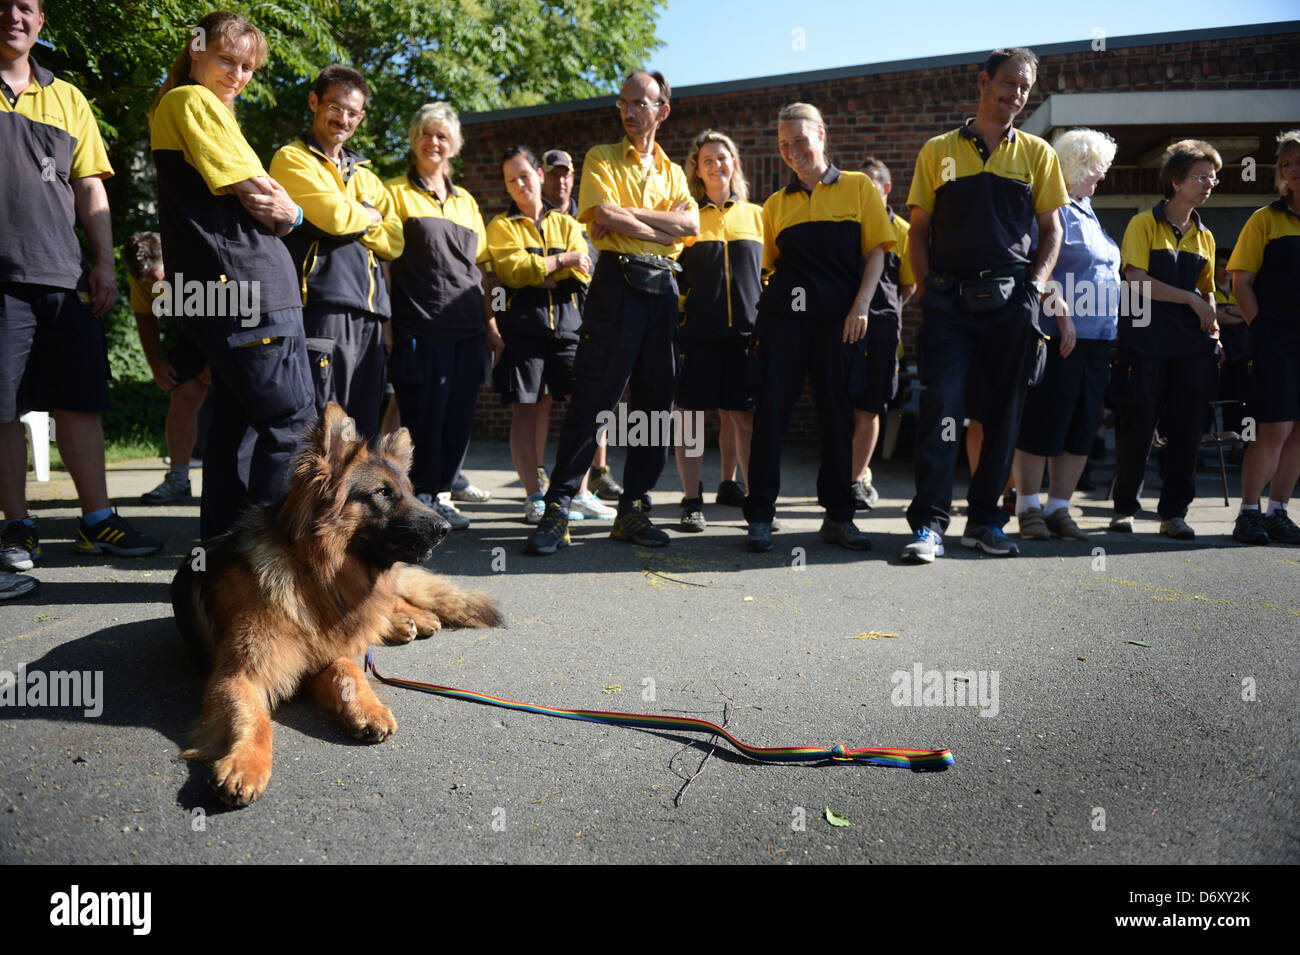 Berlin, Germany, Brieftraegern is the correct handling of dogs shown - Stock Image